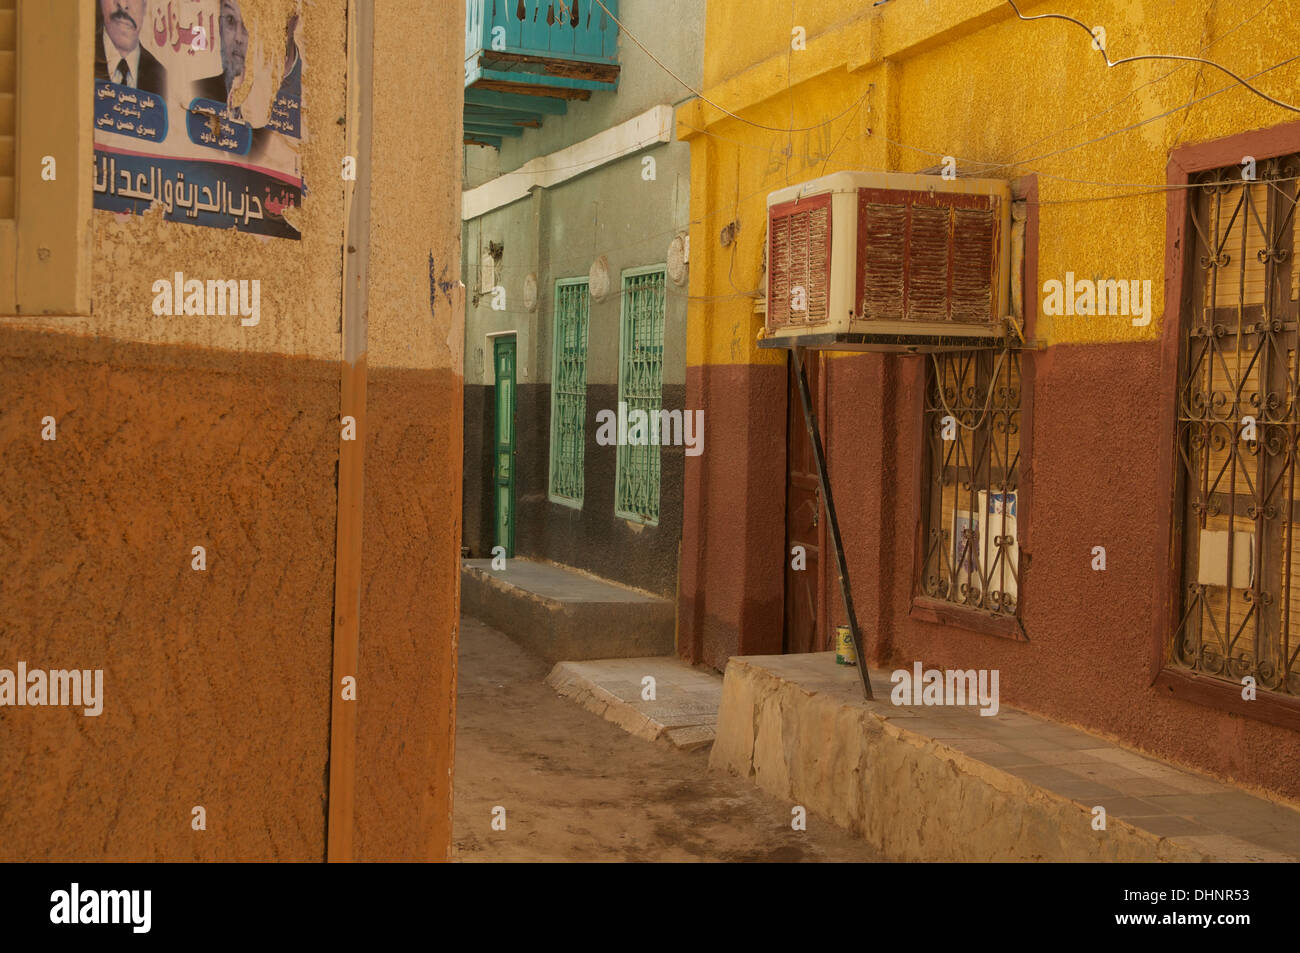 Street in the nubian village of Siou, on the island of Elephantine at Aswan, Egypt. - Stock Image